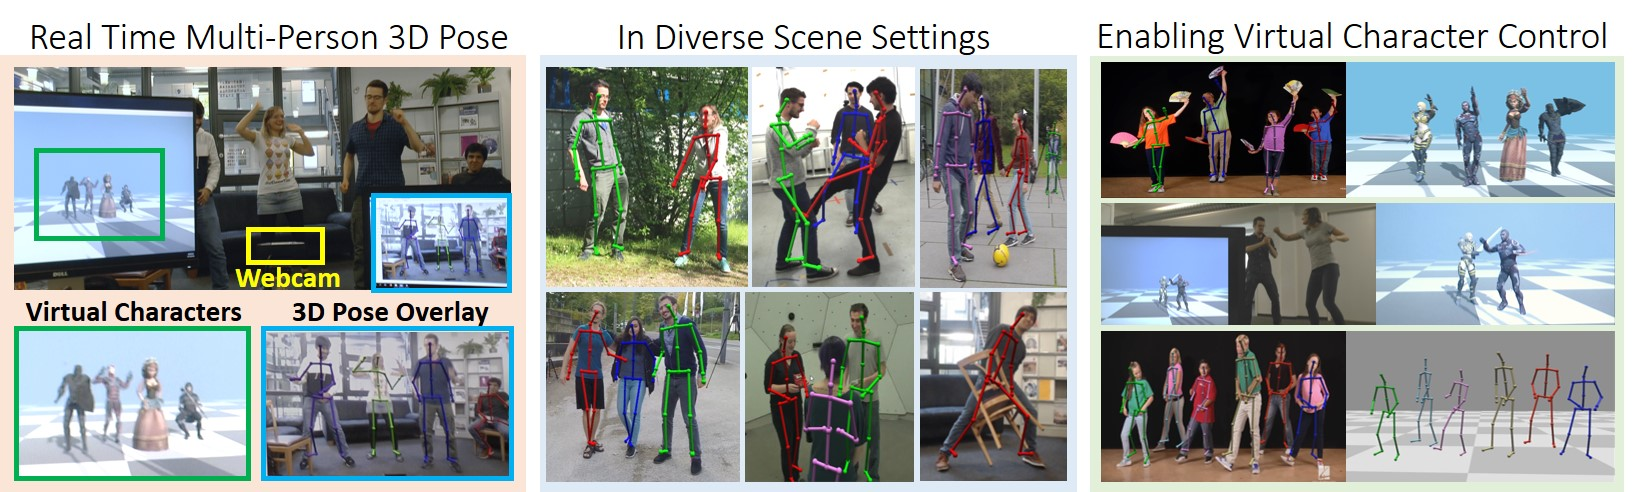 Our real-time monocular RGB based 3D motion capture provides temporally coherent estimates of the full 3D pose of multiple people in the scene, handling occlusions and interactions in general scene settings, and localizing subjects relative to the camera. Our design allows the system to handle large groups of people in the scene with the run-time only minimally affected by the number of people in the scene. Our method yields full skeletal pose in terms of joint angles, which can readily be employed for interactive character animation.